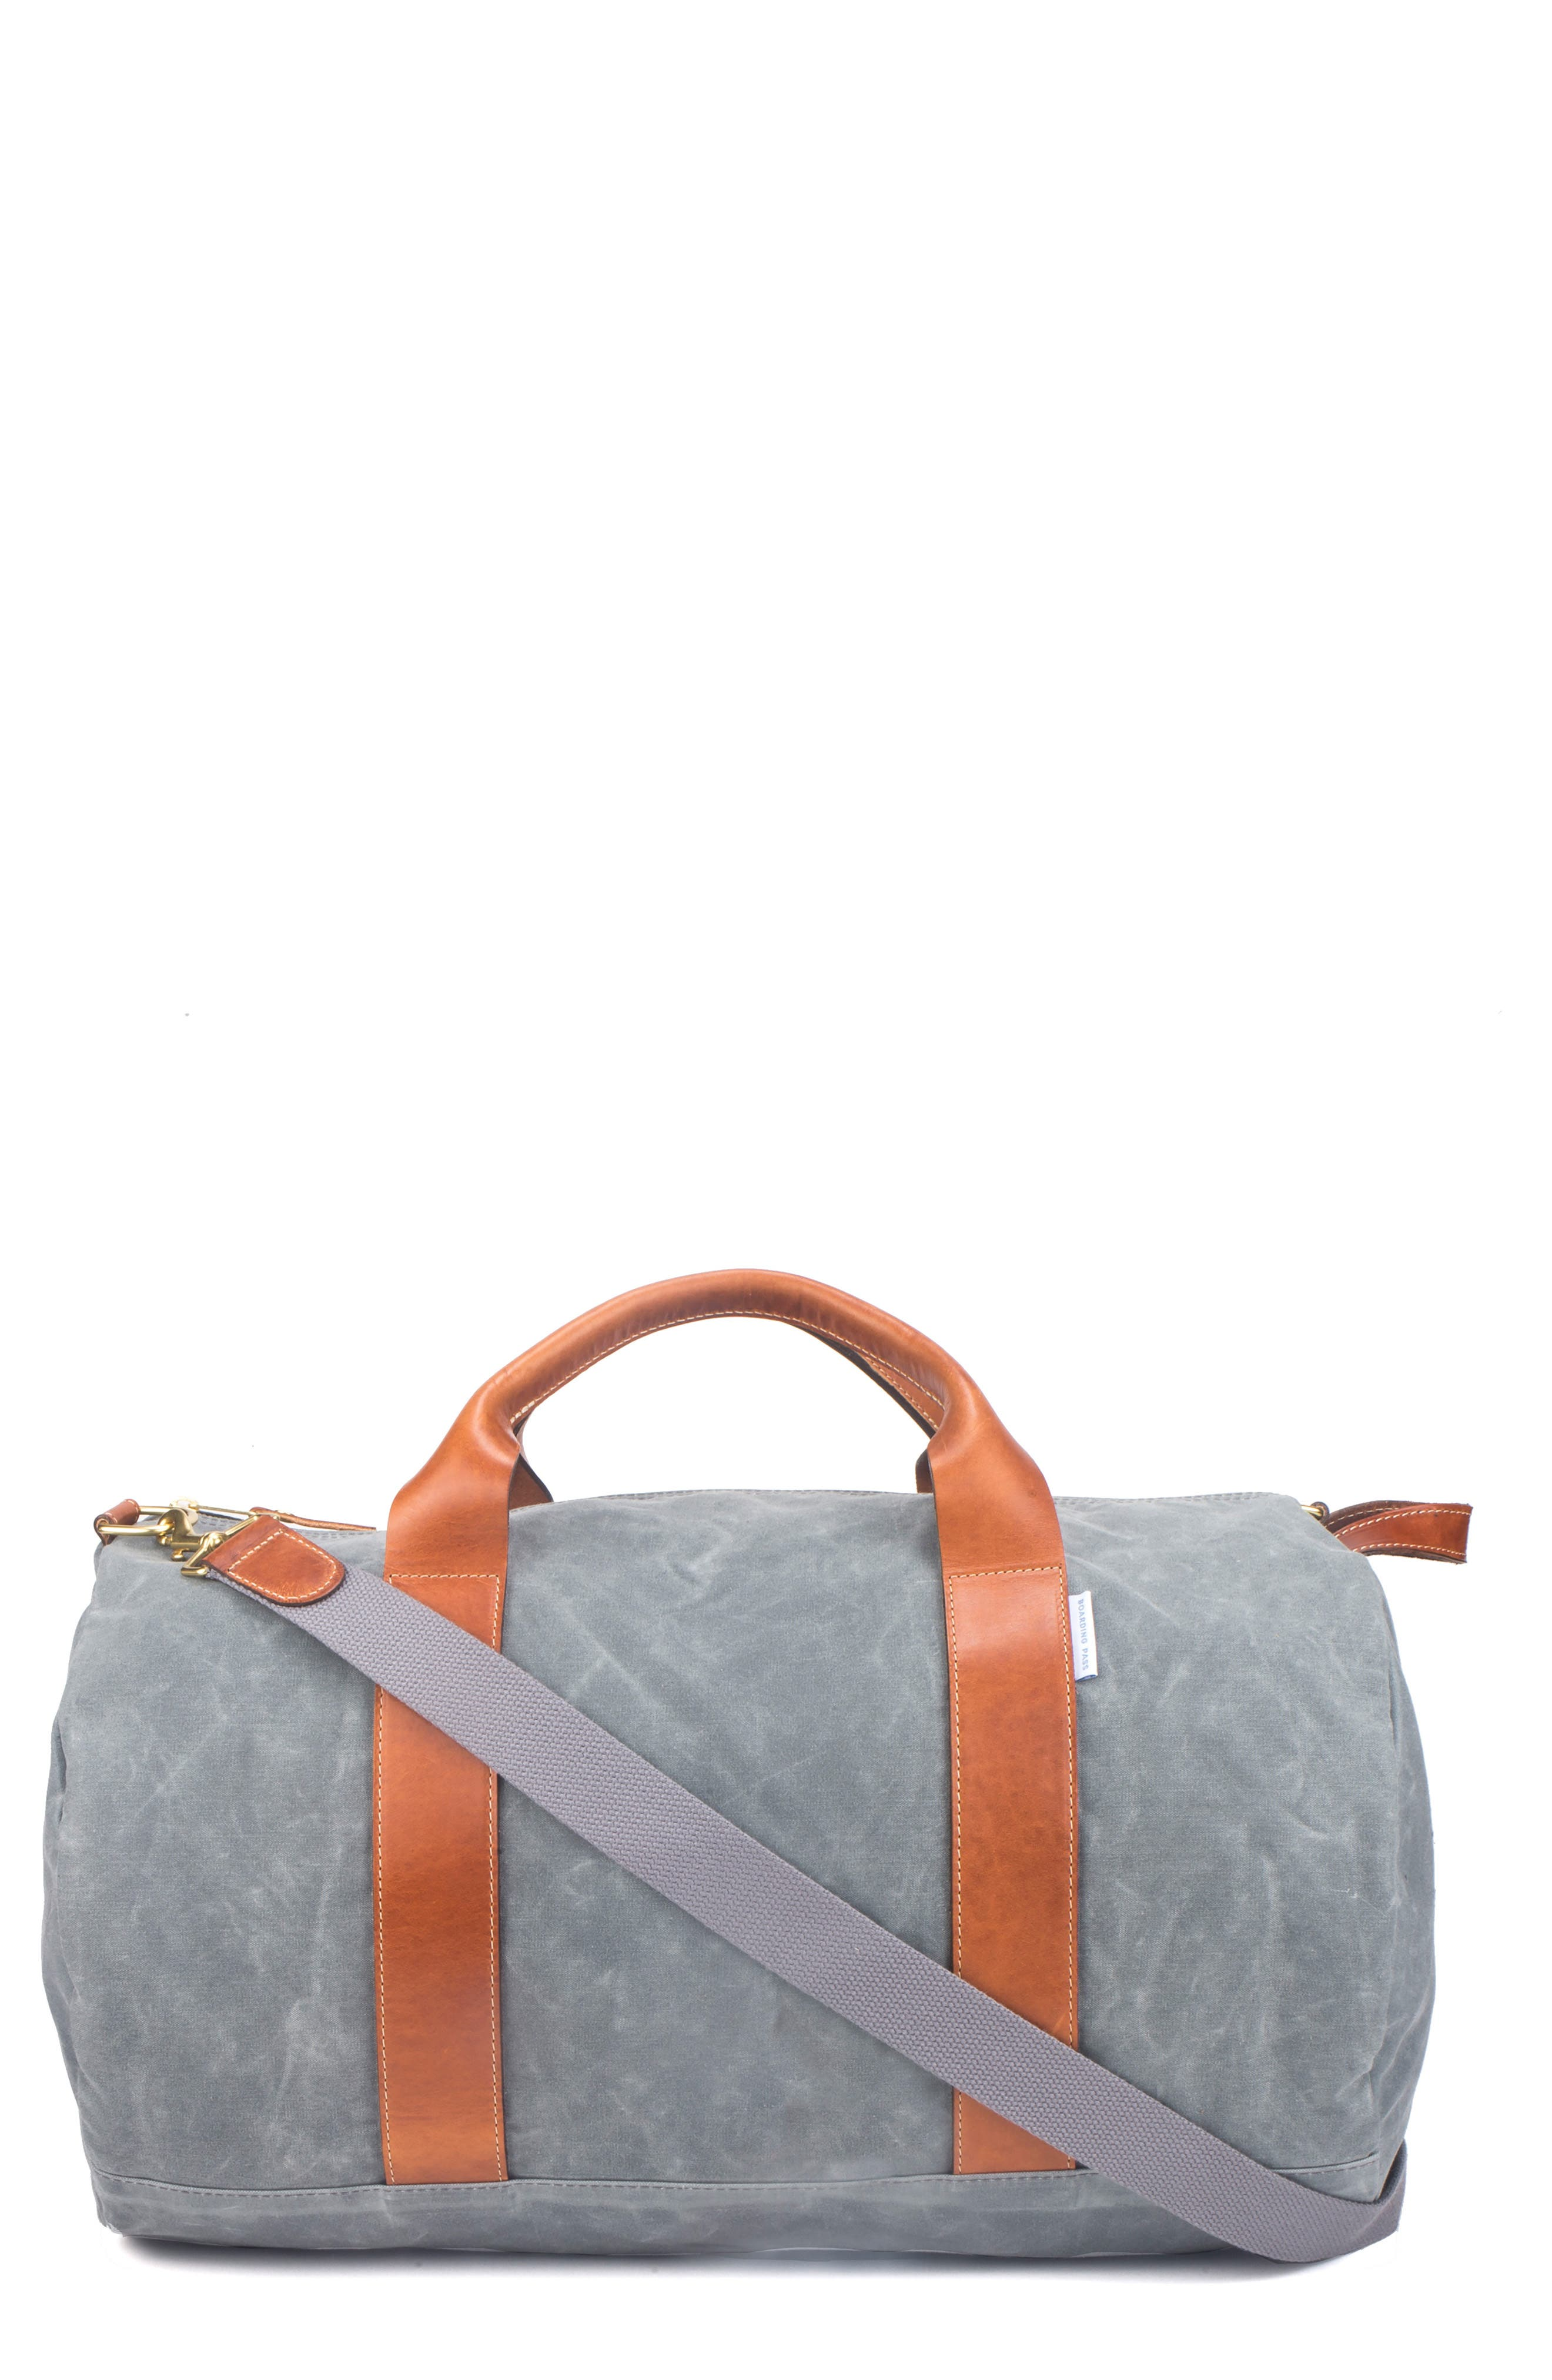 VOYAGER DUFFEL BAG - GREY